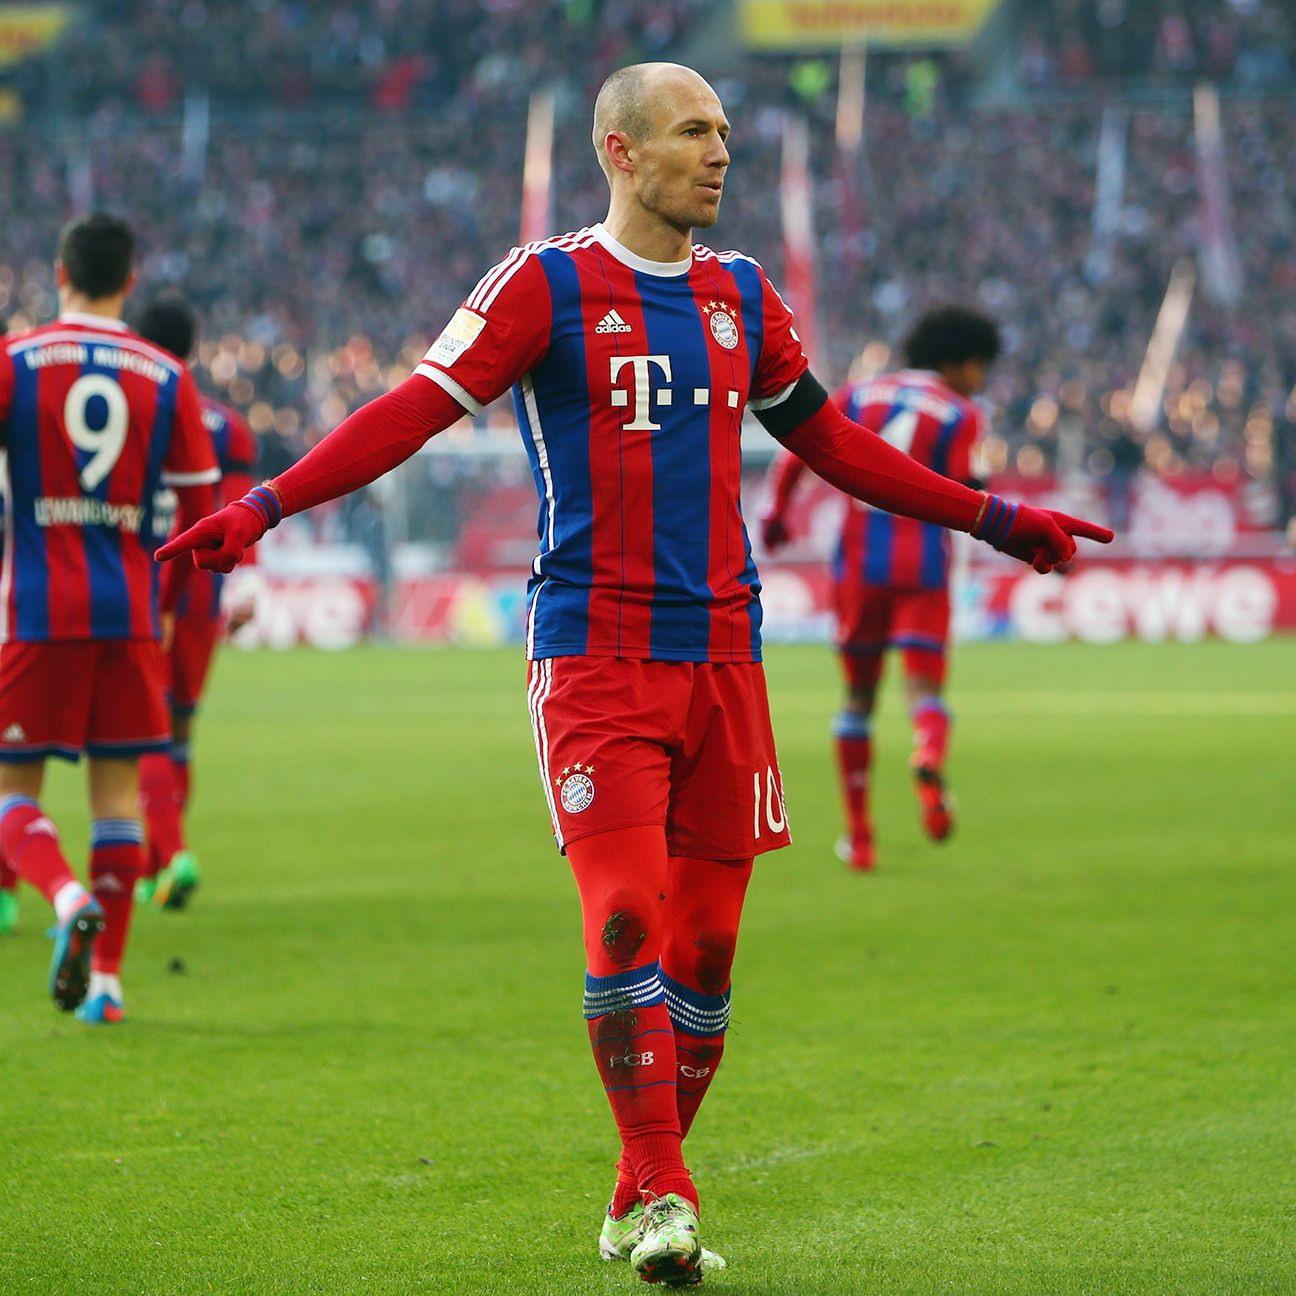 Bayern's mini-crisis came to an abrupt halt thanks to Arjen Robben's first-half wonder strike at Stuttgart.